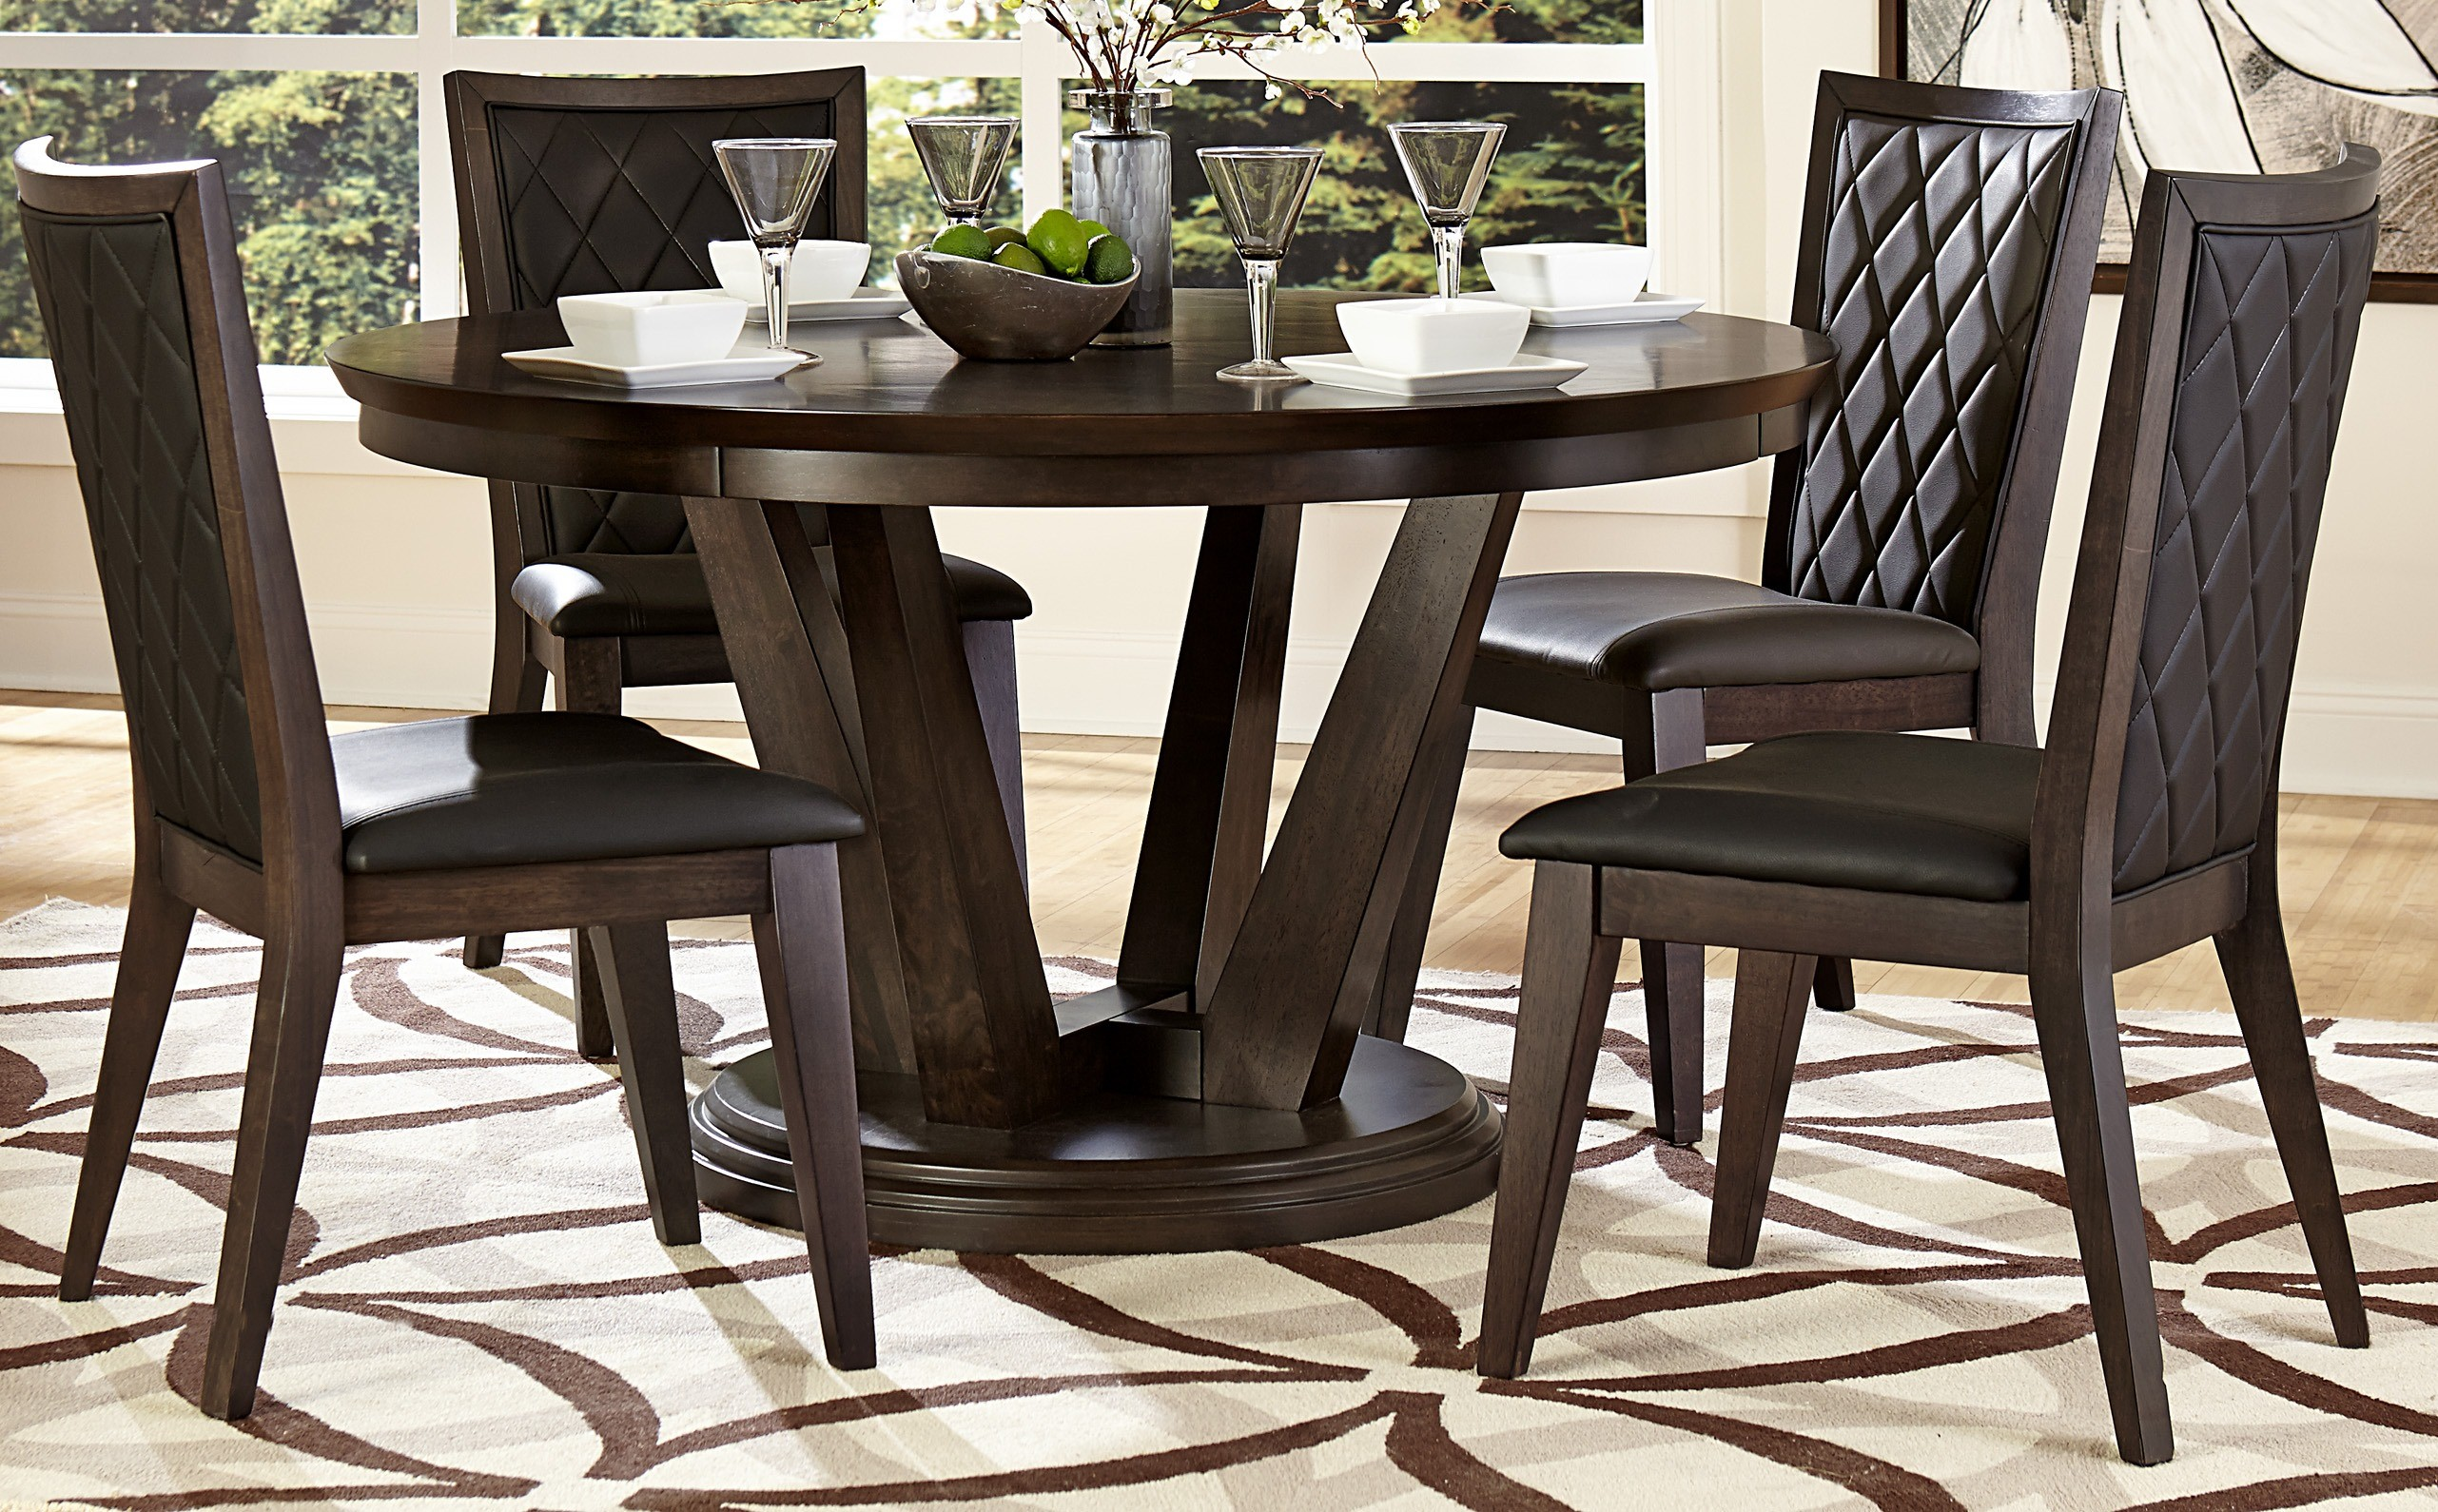 dark walnut dining chairs recliner camping chair villa vista round table from